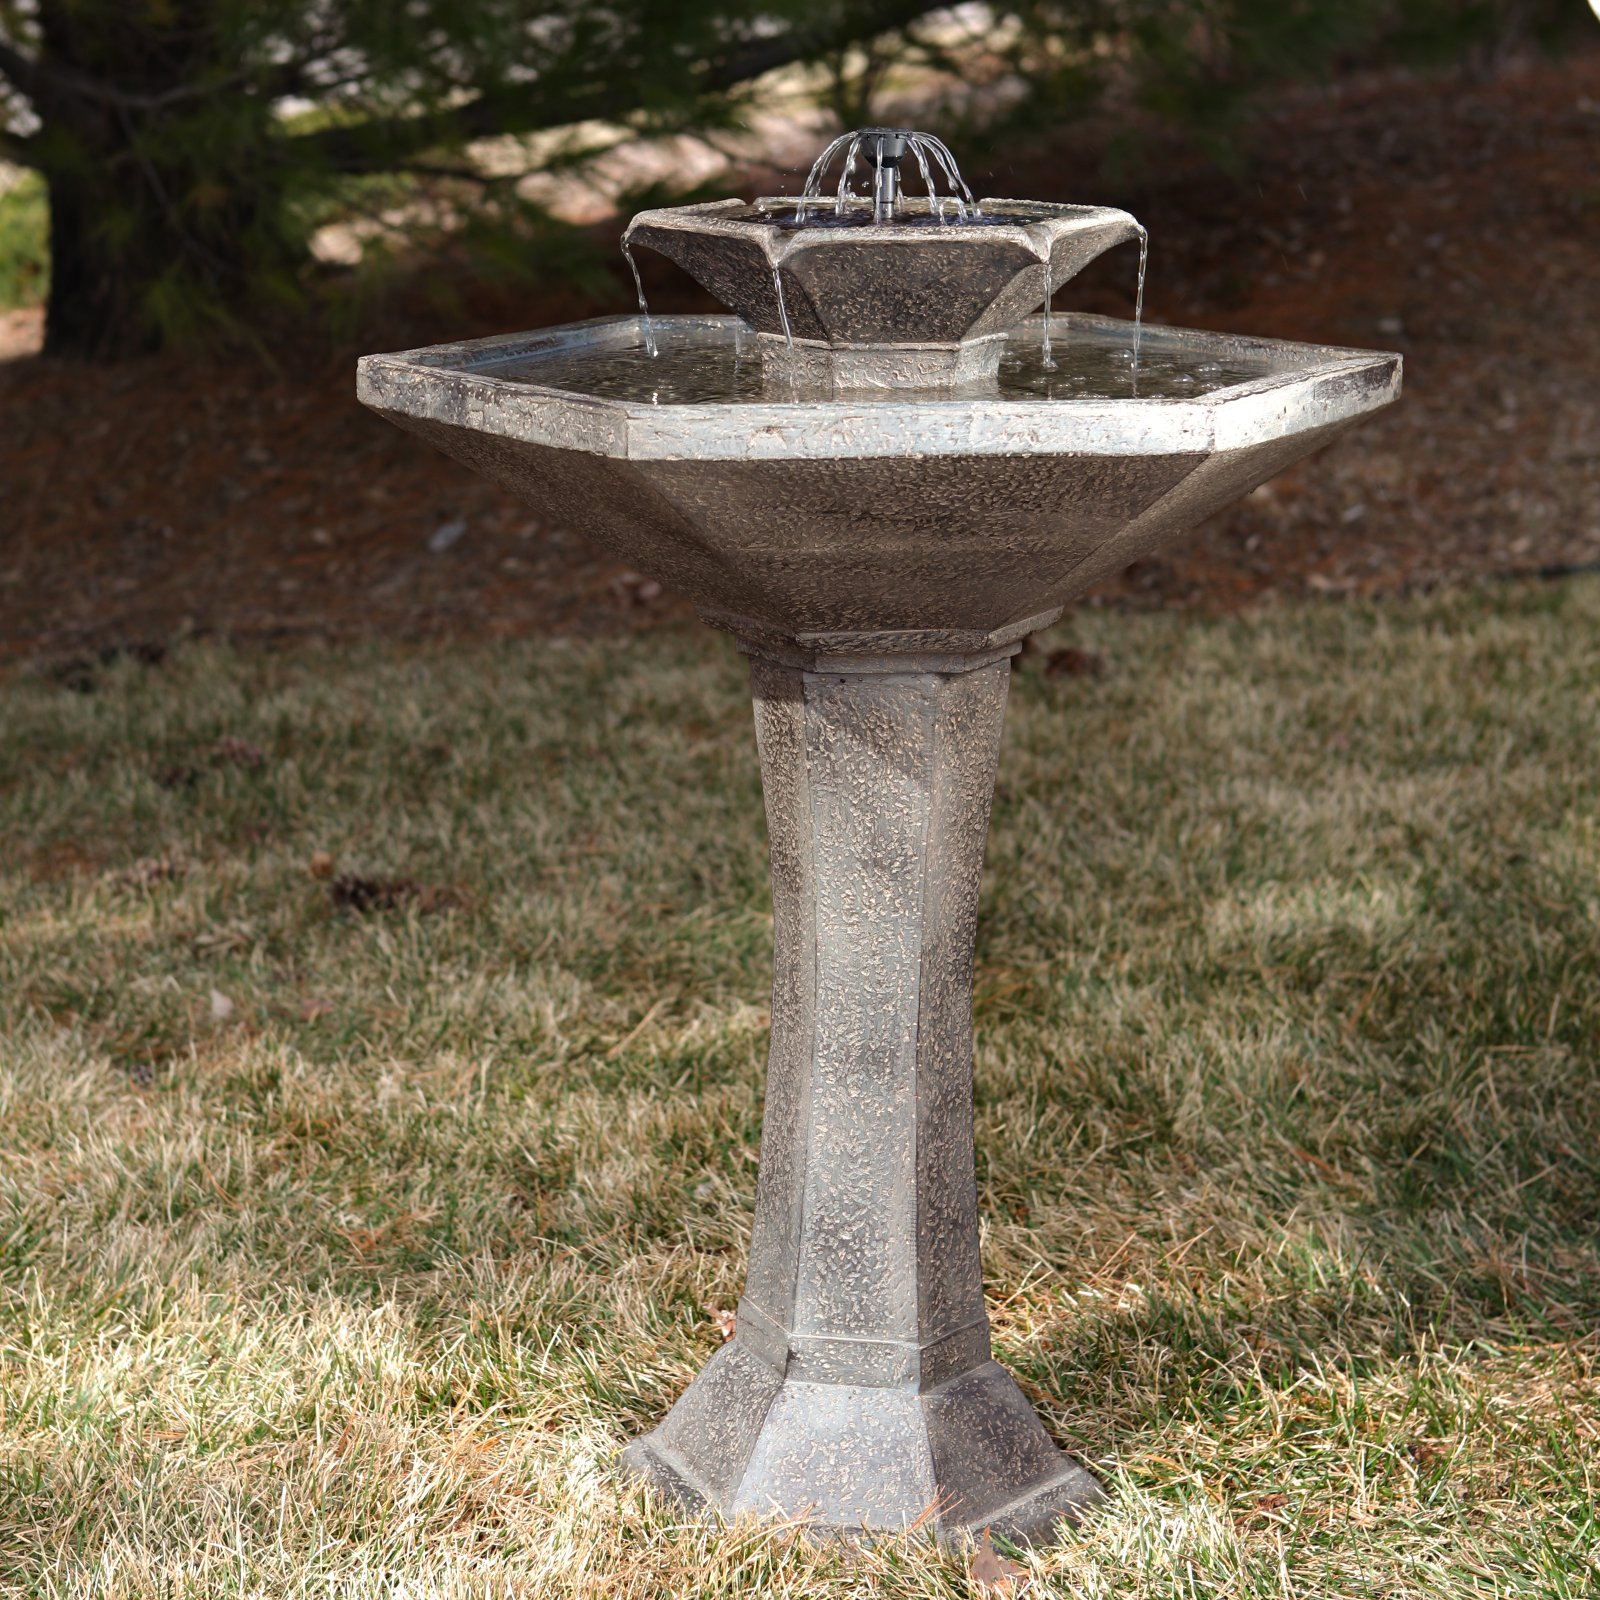 Smart Solar Alfresco 2-Tier Solar Bird Bath Fountain